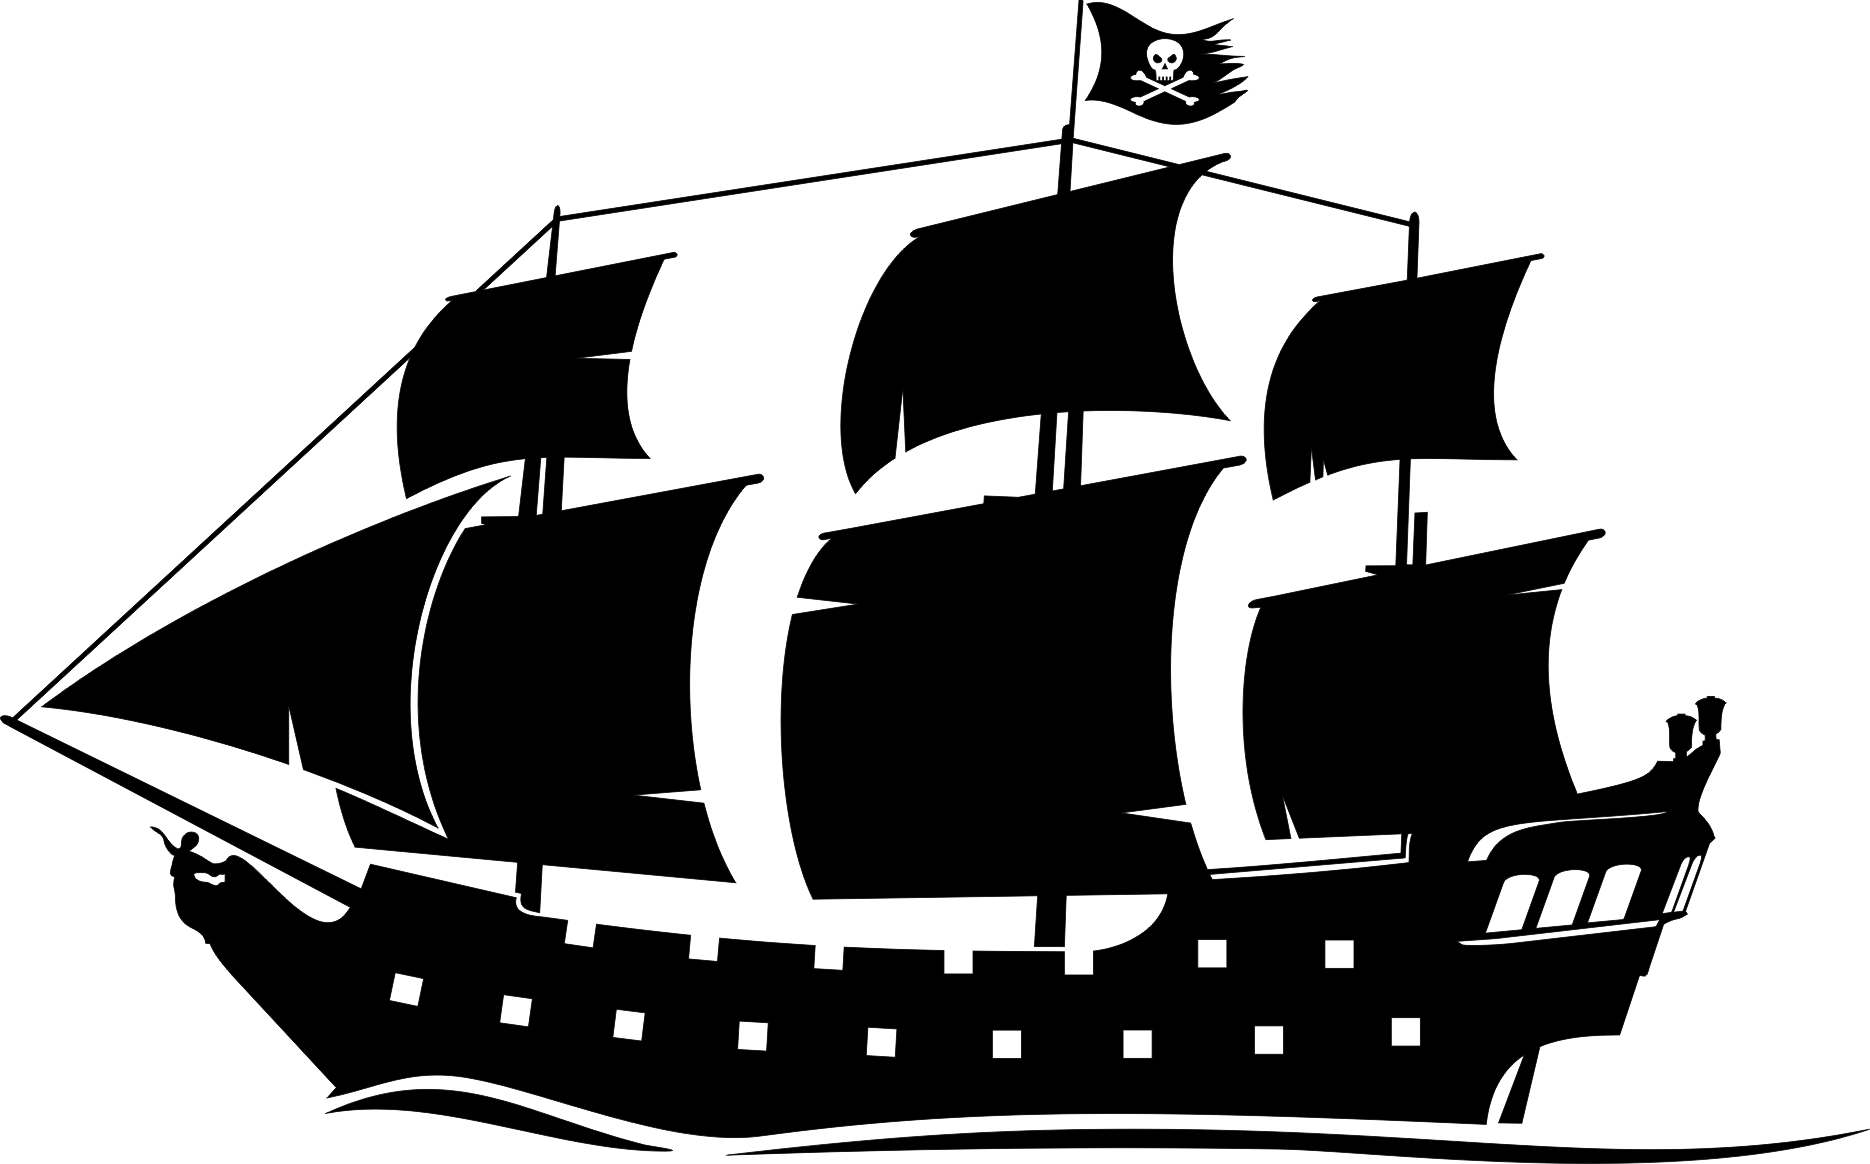 Pirate Ship Silhouette - ClipArt Best